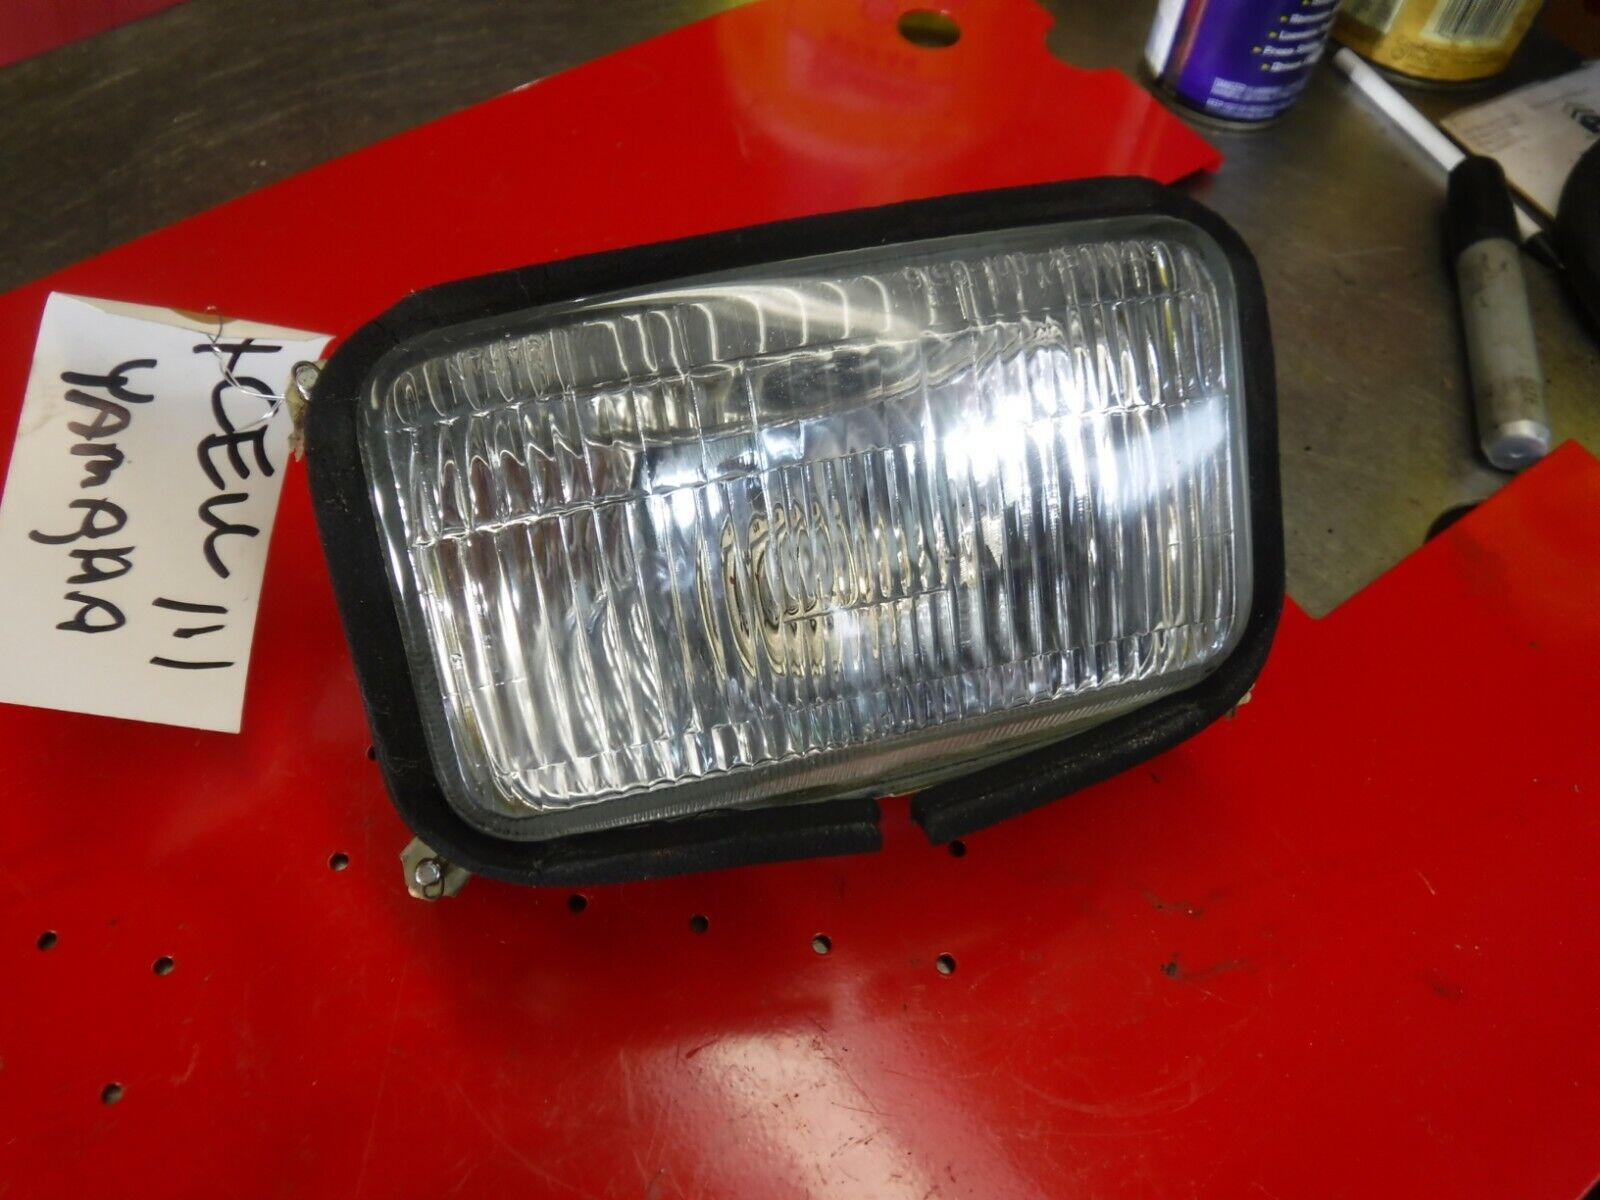 1987 82J YAMAHA EXCELL III snowmobile parts: HEADLIGHT ASSEMBLY